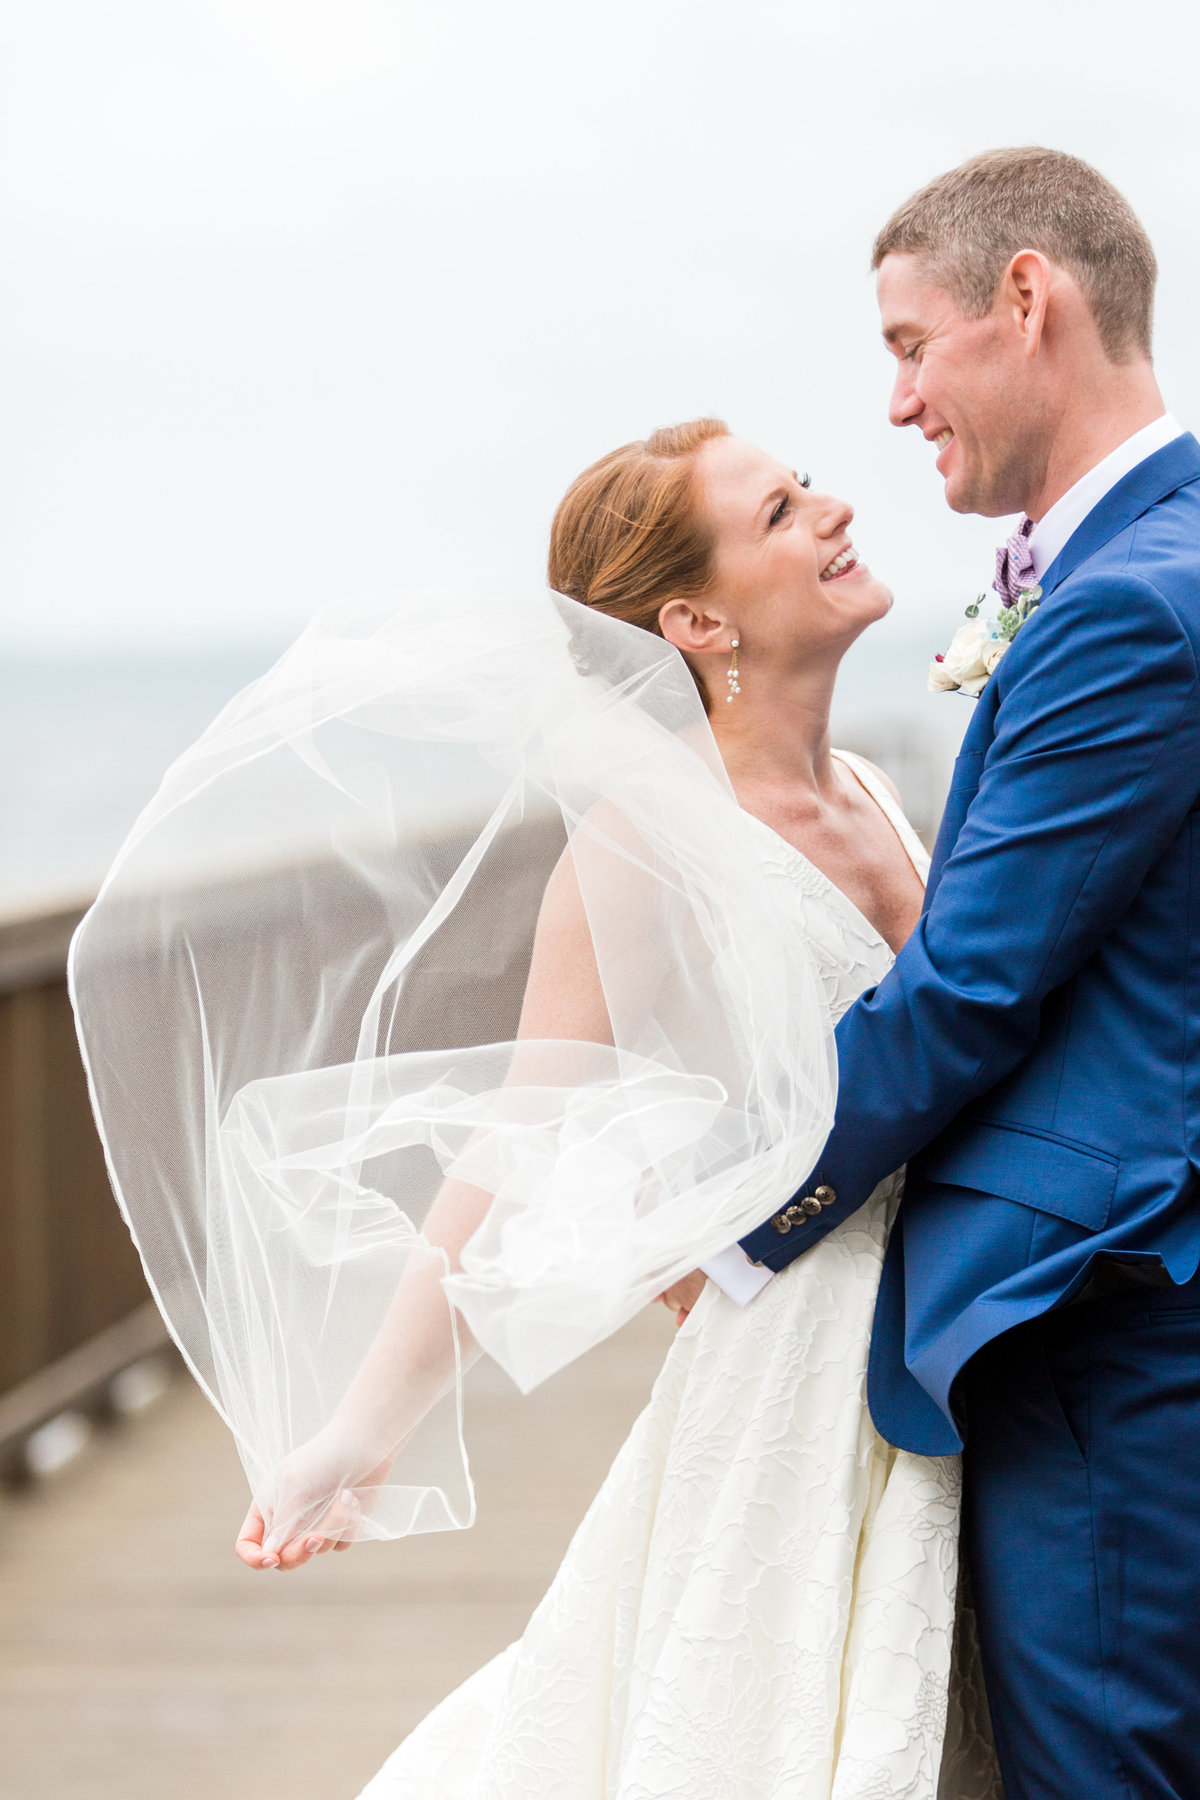 Kristina Staal Photography - Brittany & Ed Wedding - Coveleigh Club Rye NY Sep 14 2019-201